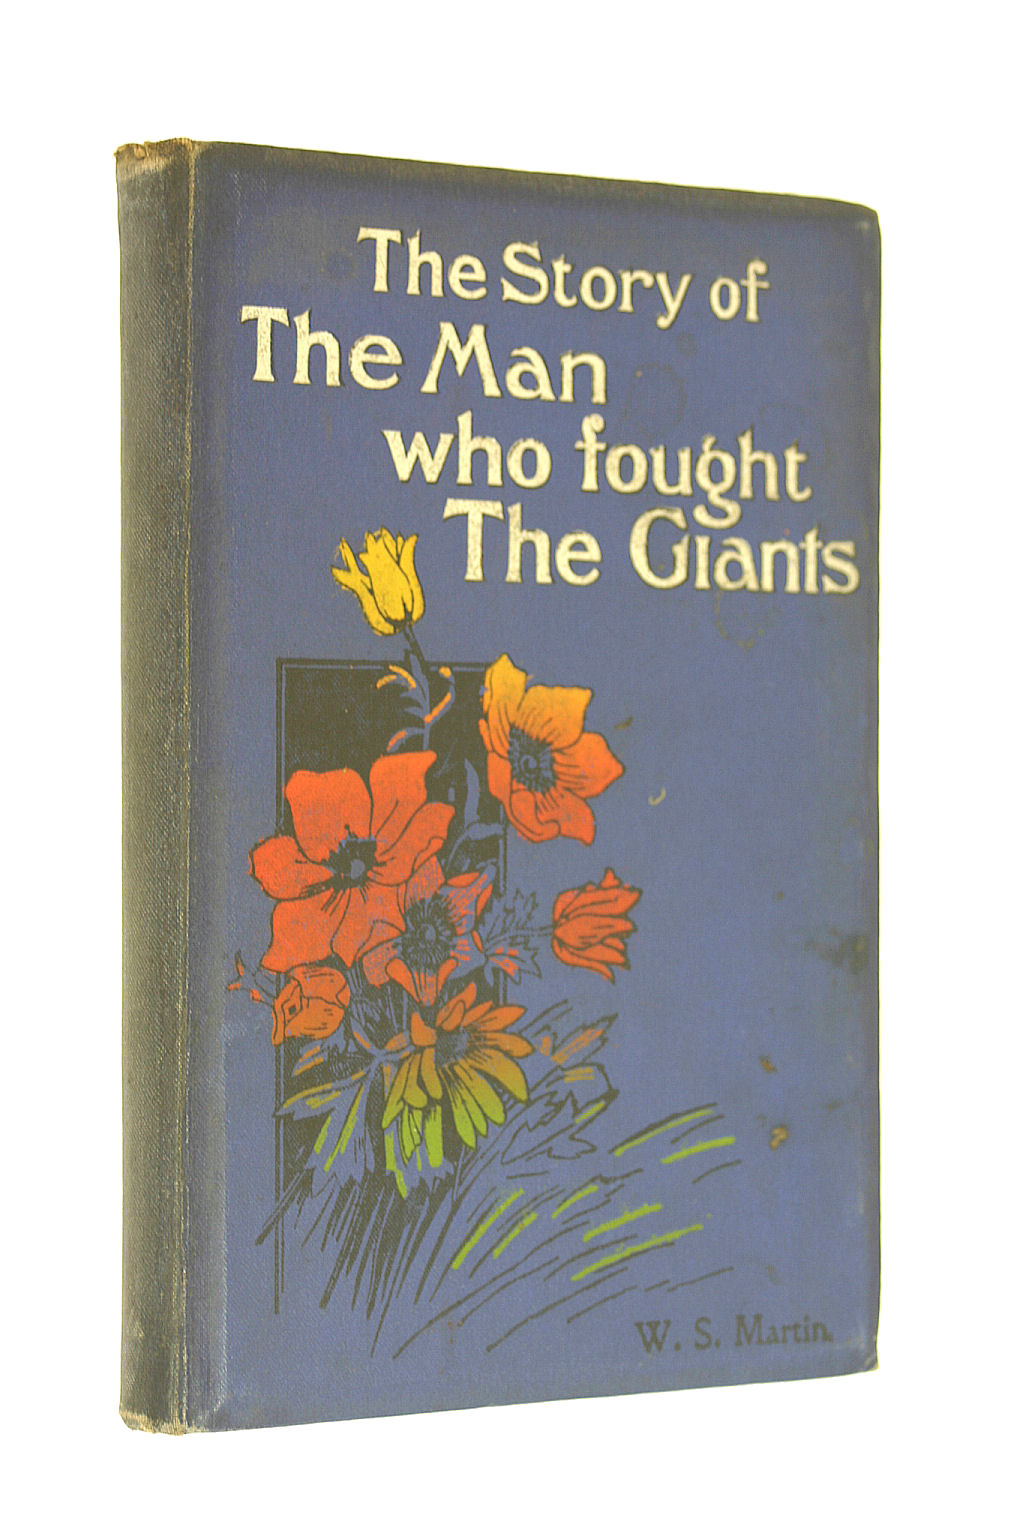 Image for The Story of the Man who fought the Giants i.e. Martin Luther